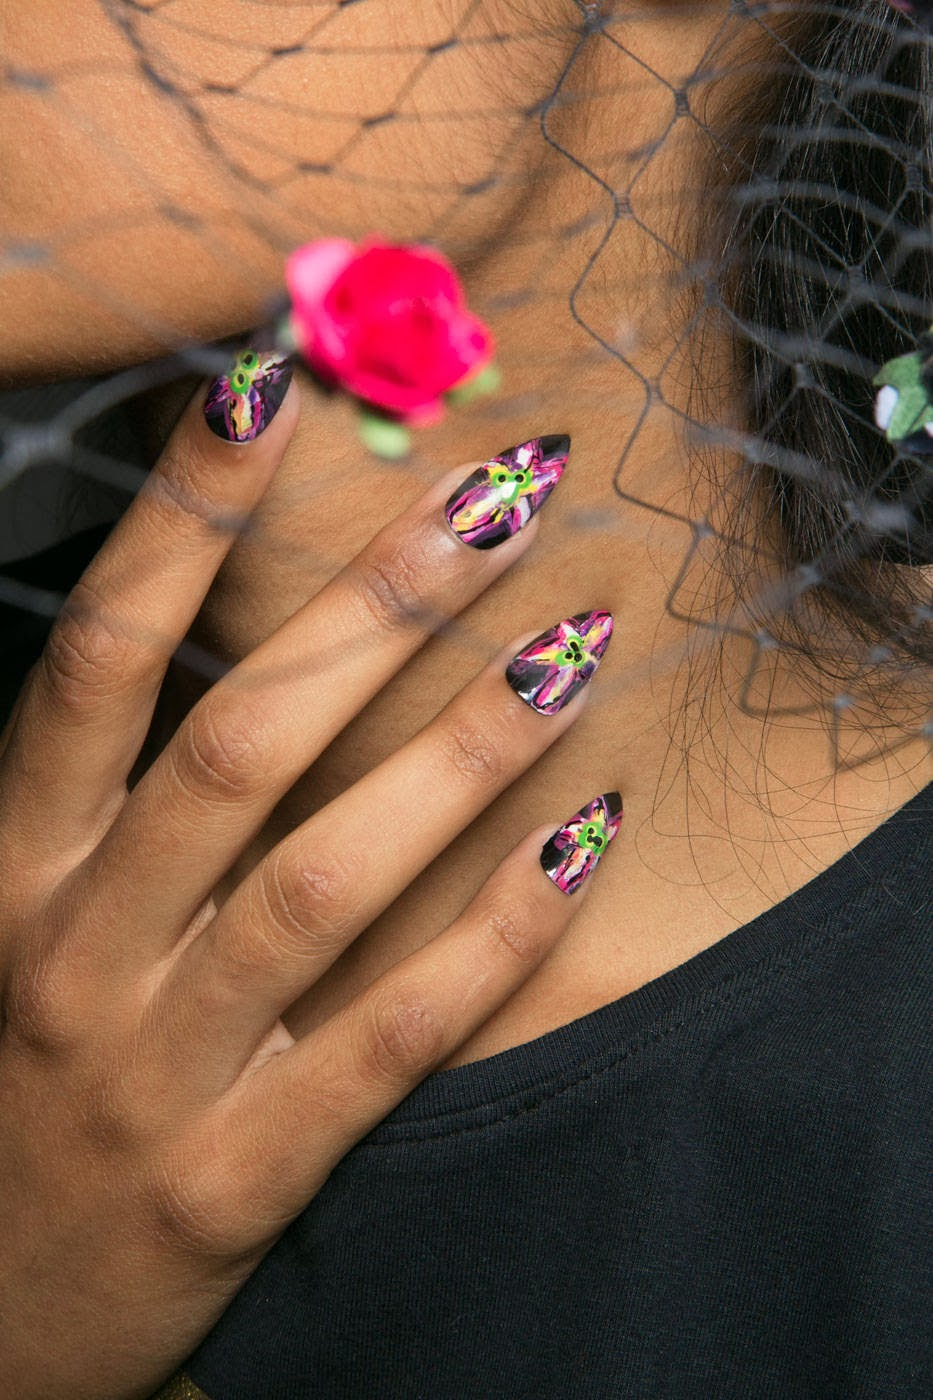 Trend Nail Art: The Bloomin' Couch: 2014 Nail Trends